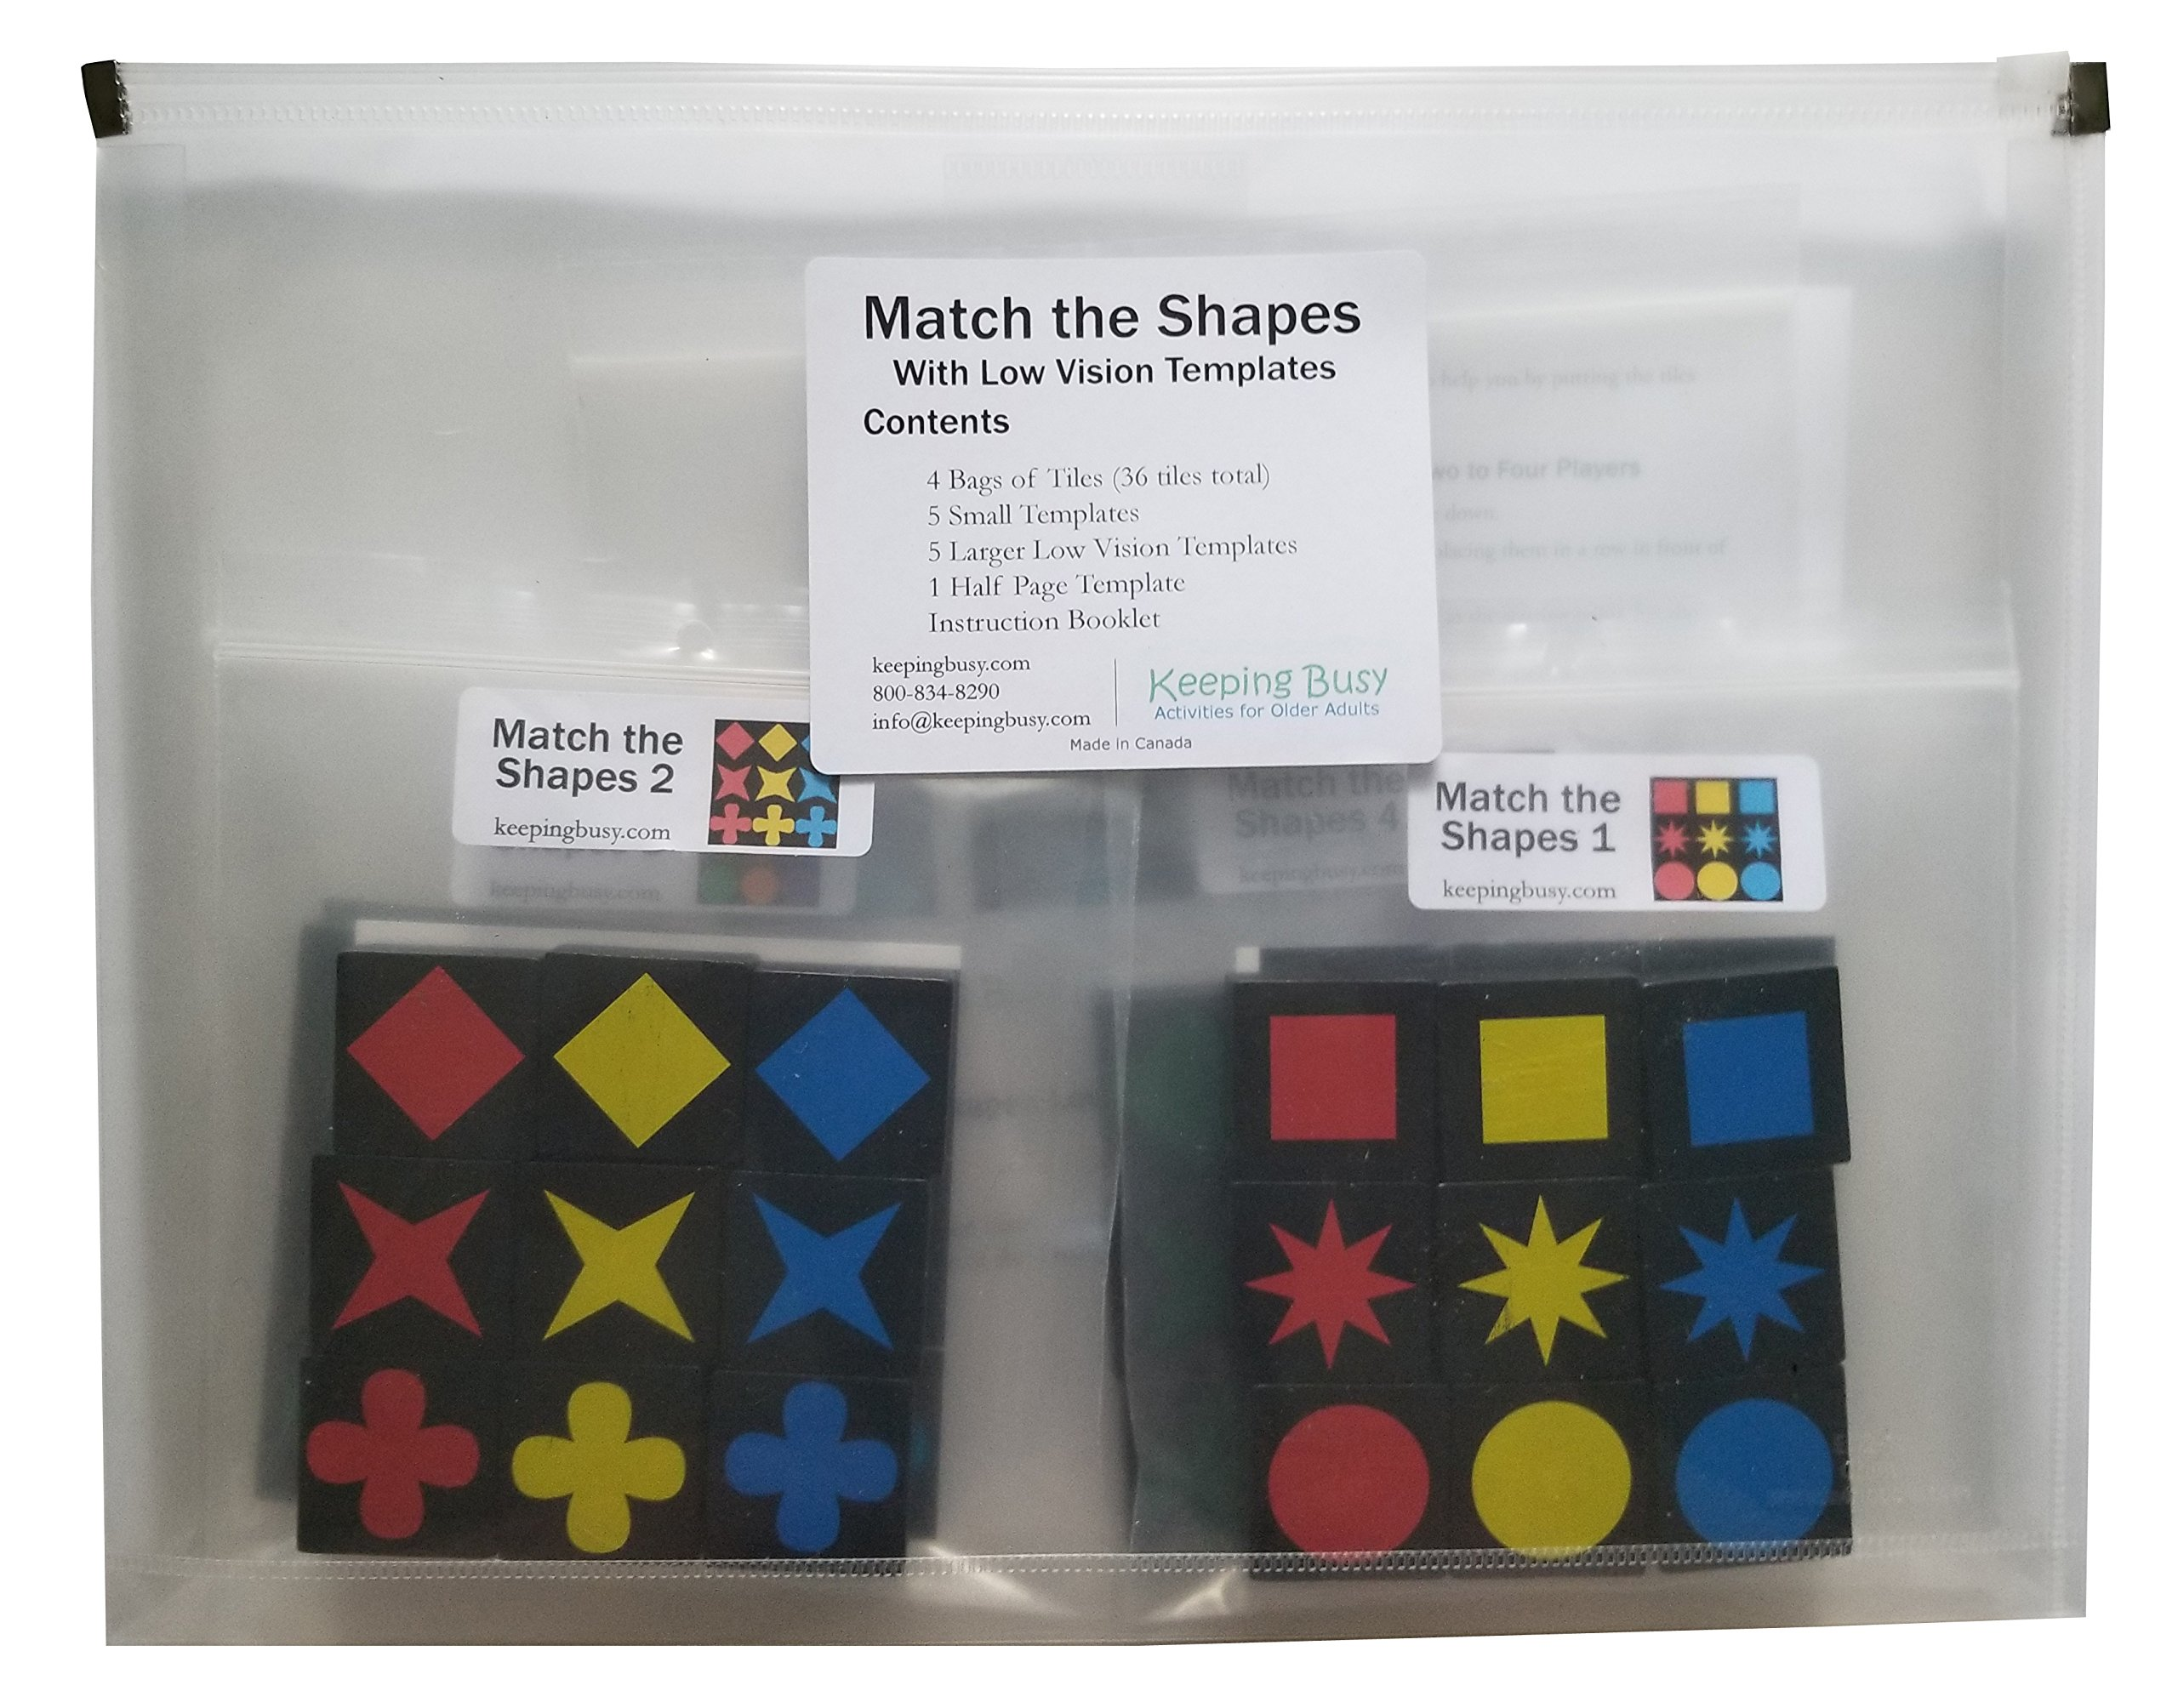 Keeping Busy Match the Shapes Low Vision Edition Dementia and Alzheimer's Engaging Activity for Older Adults